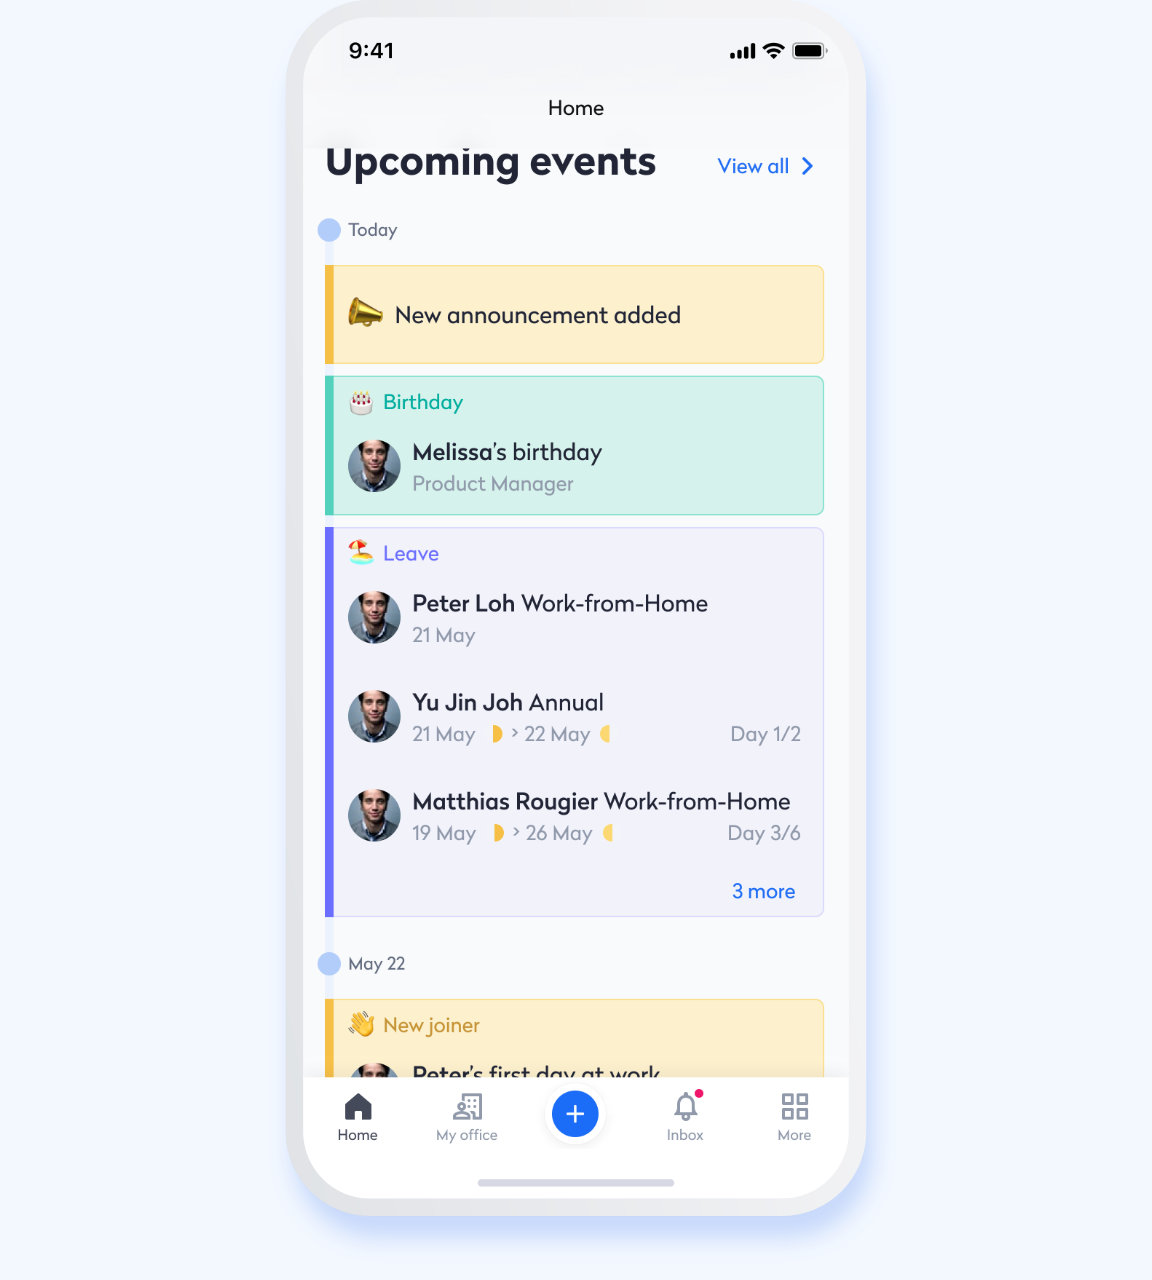 Swingvy mobile HR app view of shared company calendar with upcoming events